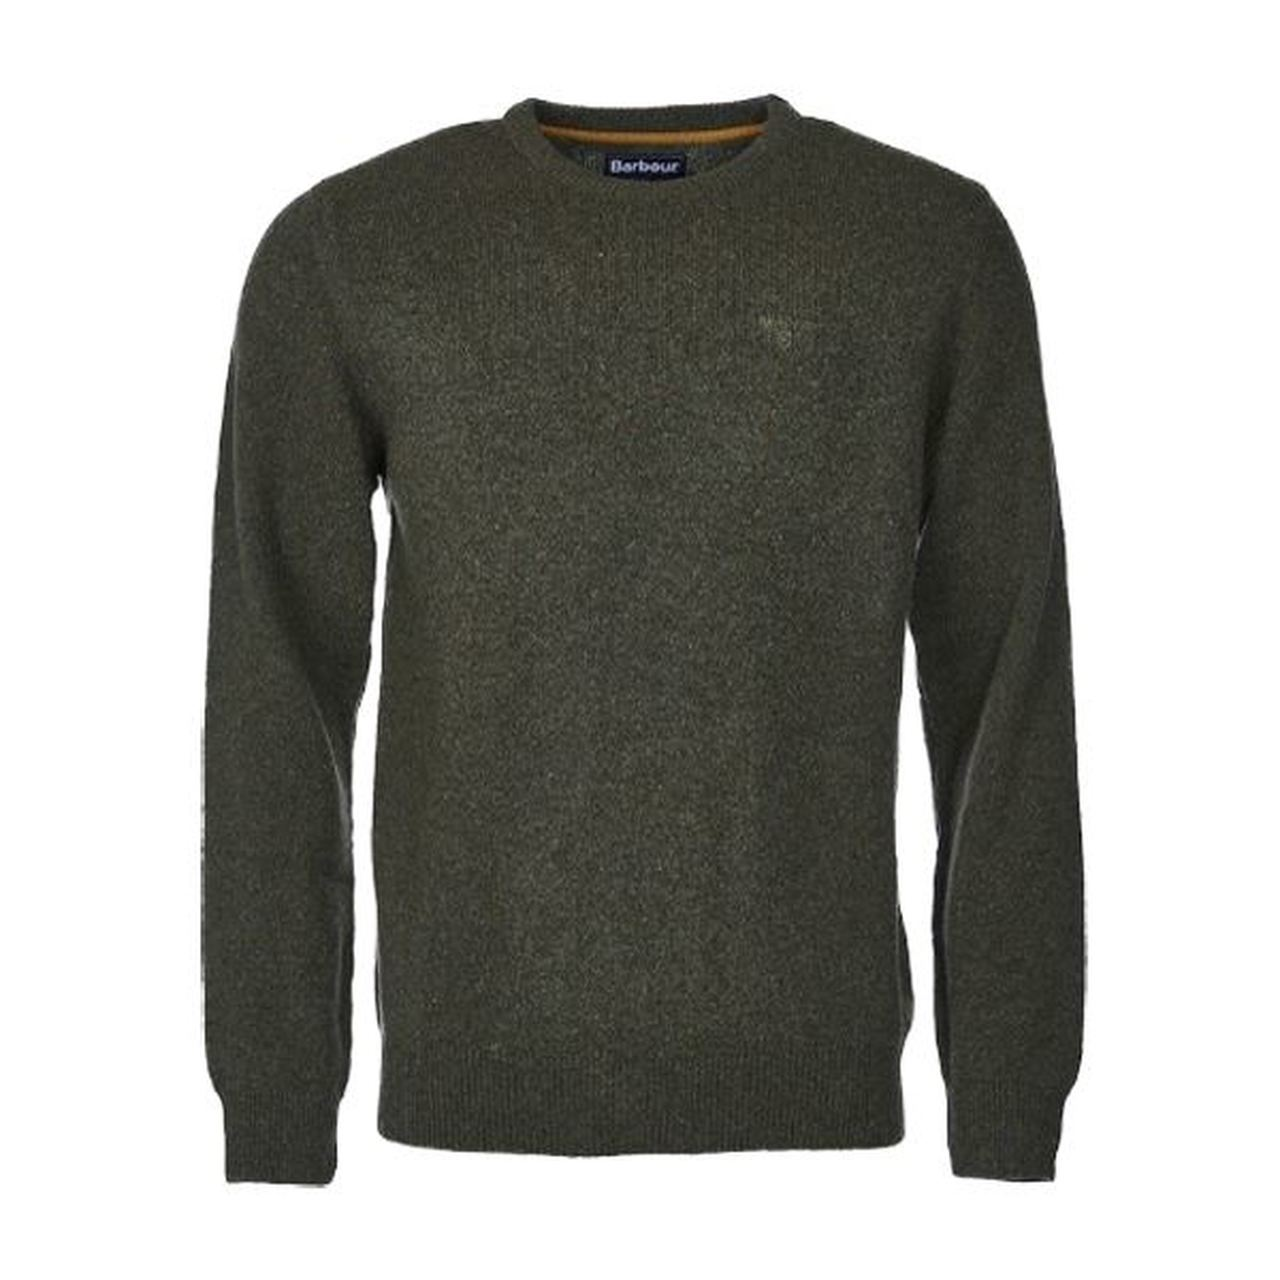 Barbour Tisbury Crew Neck Jumper for Men in Forest